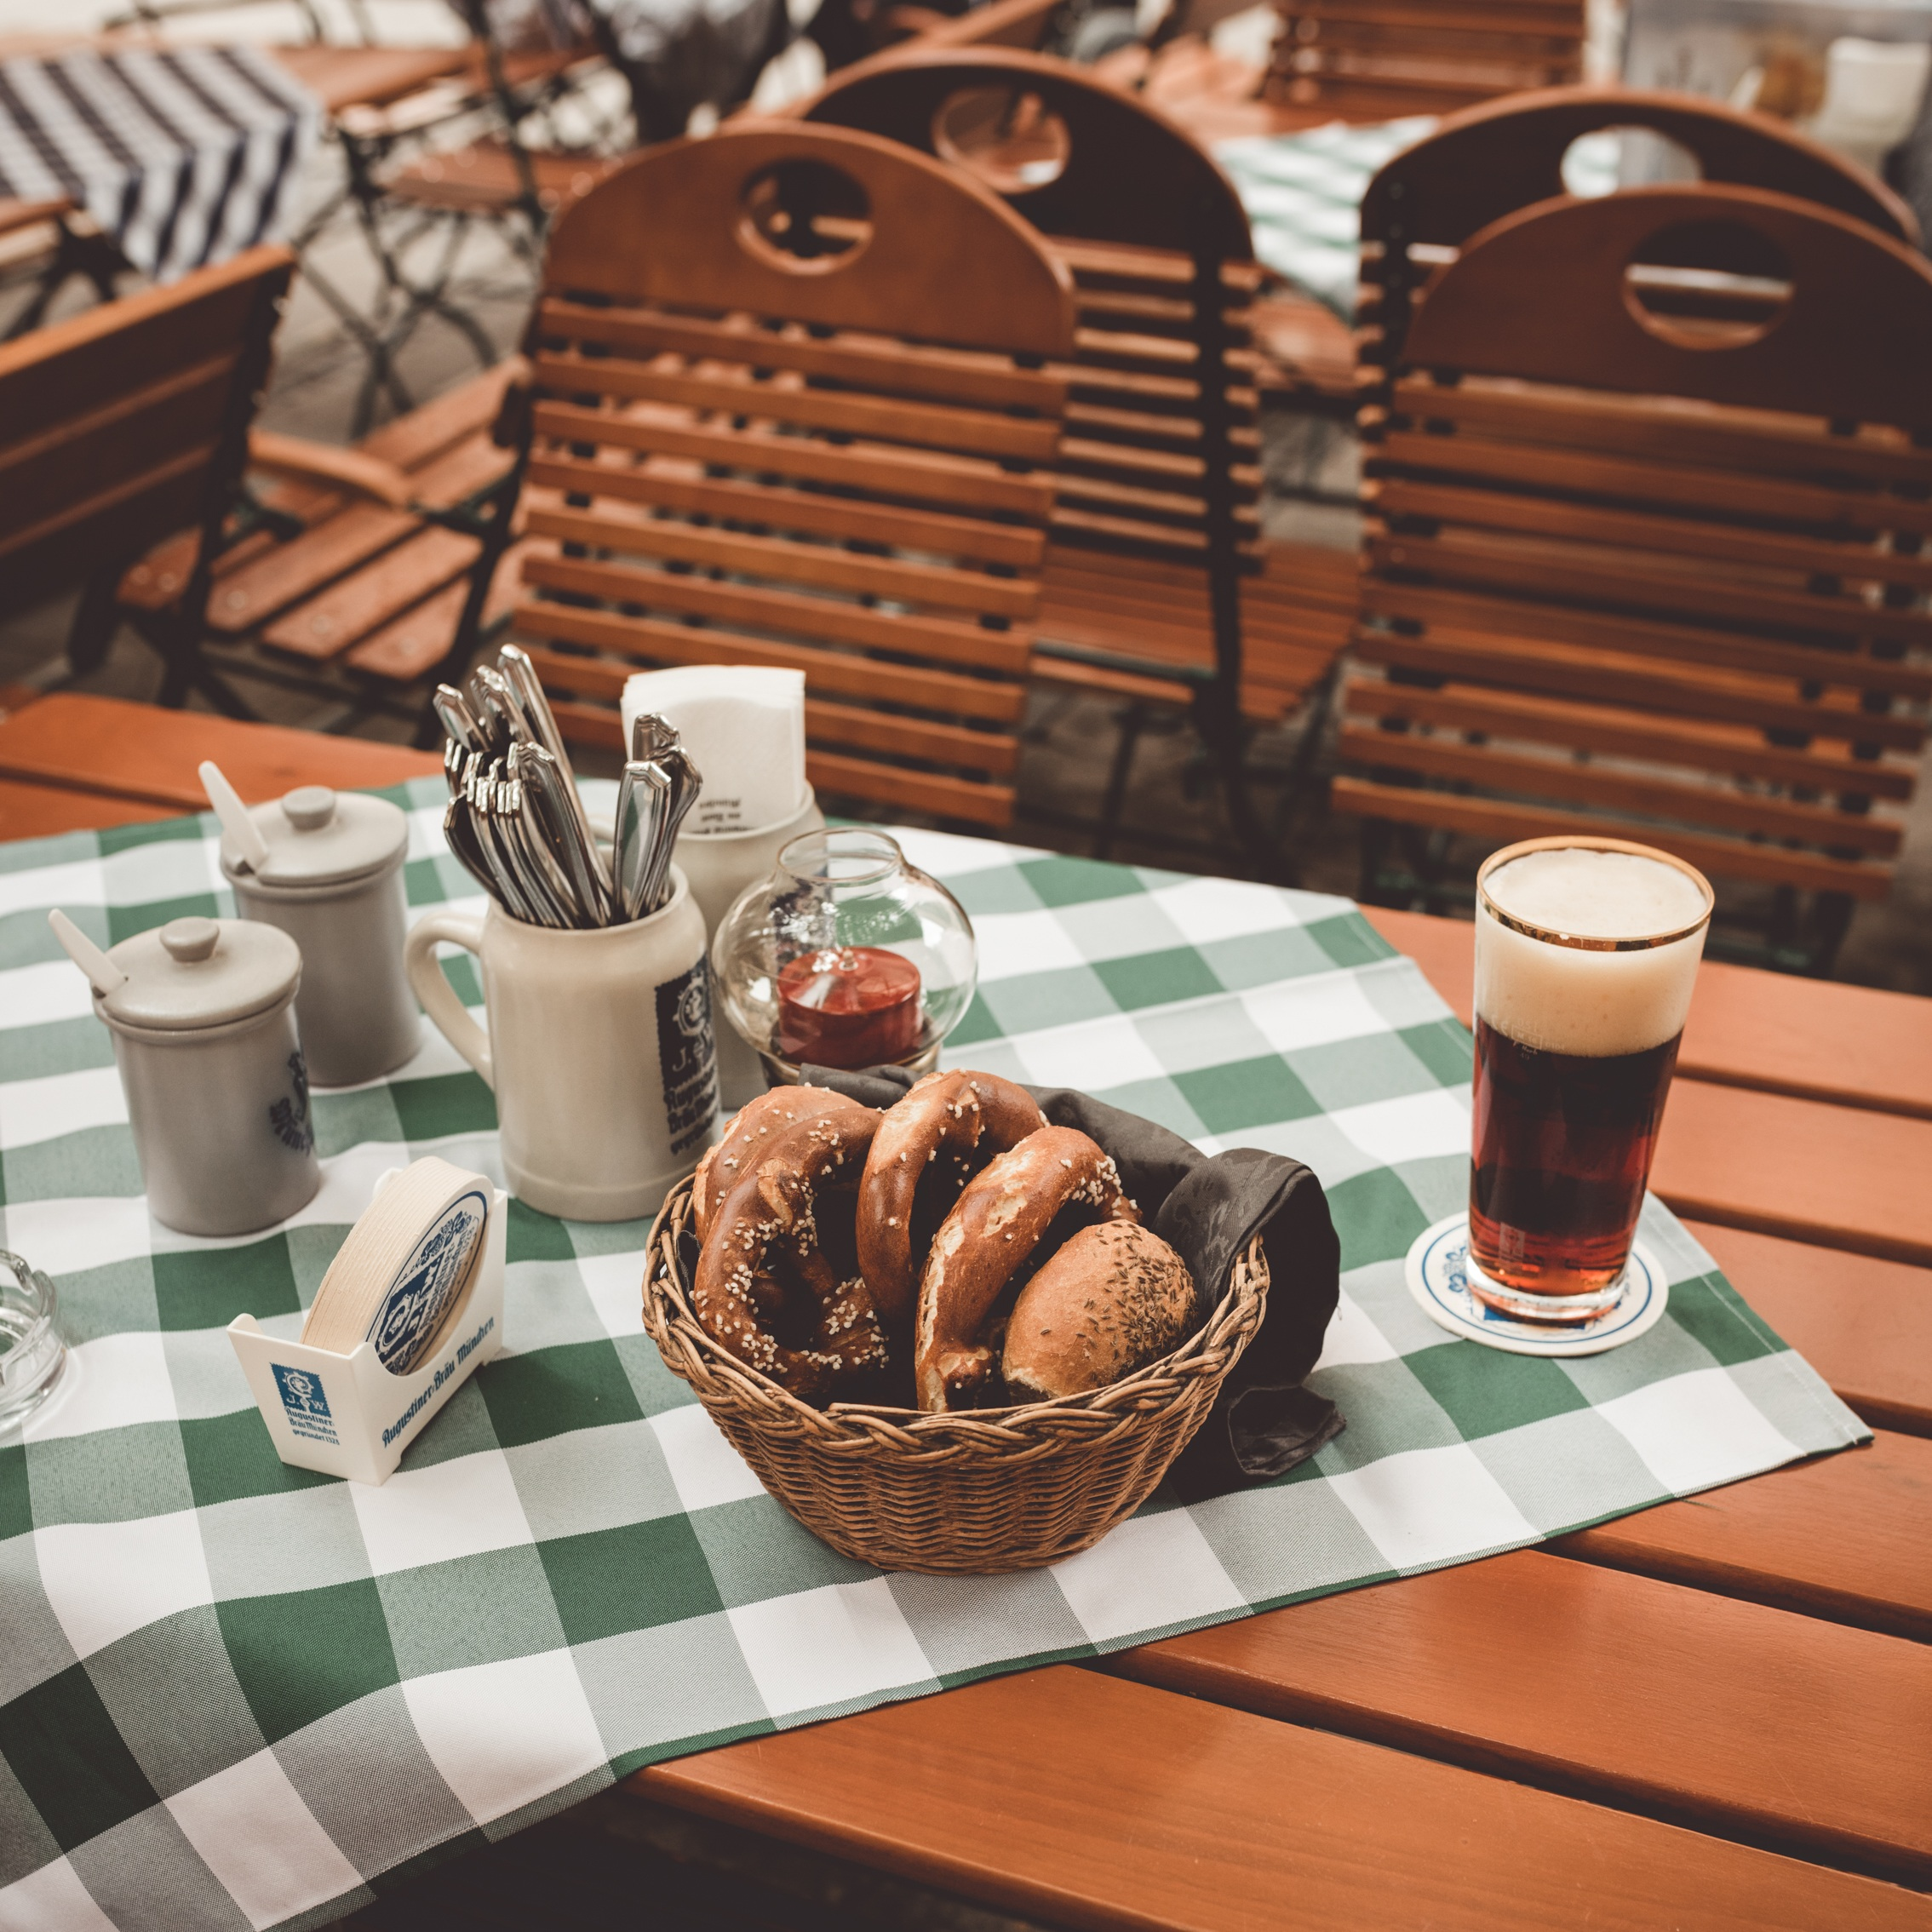 Trip Highlights.. - > Join our amazing local German food tour> Networking Drinks with local business owners> Exploring the tiny world of Minitur Wunderland> Meet new people and make new connections> Learn all about German beer with a tasting experience